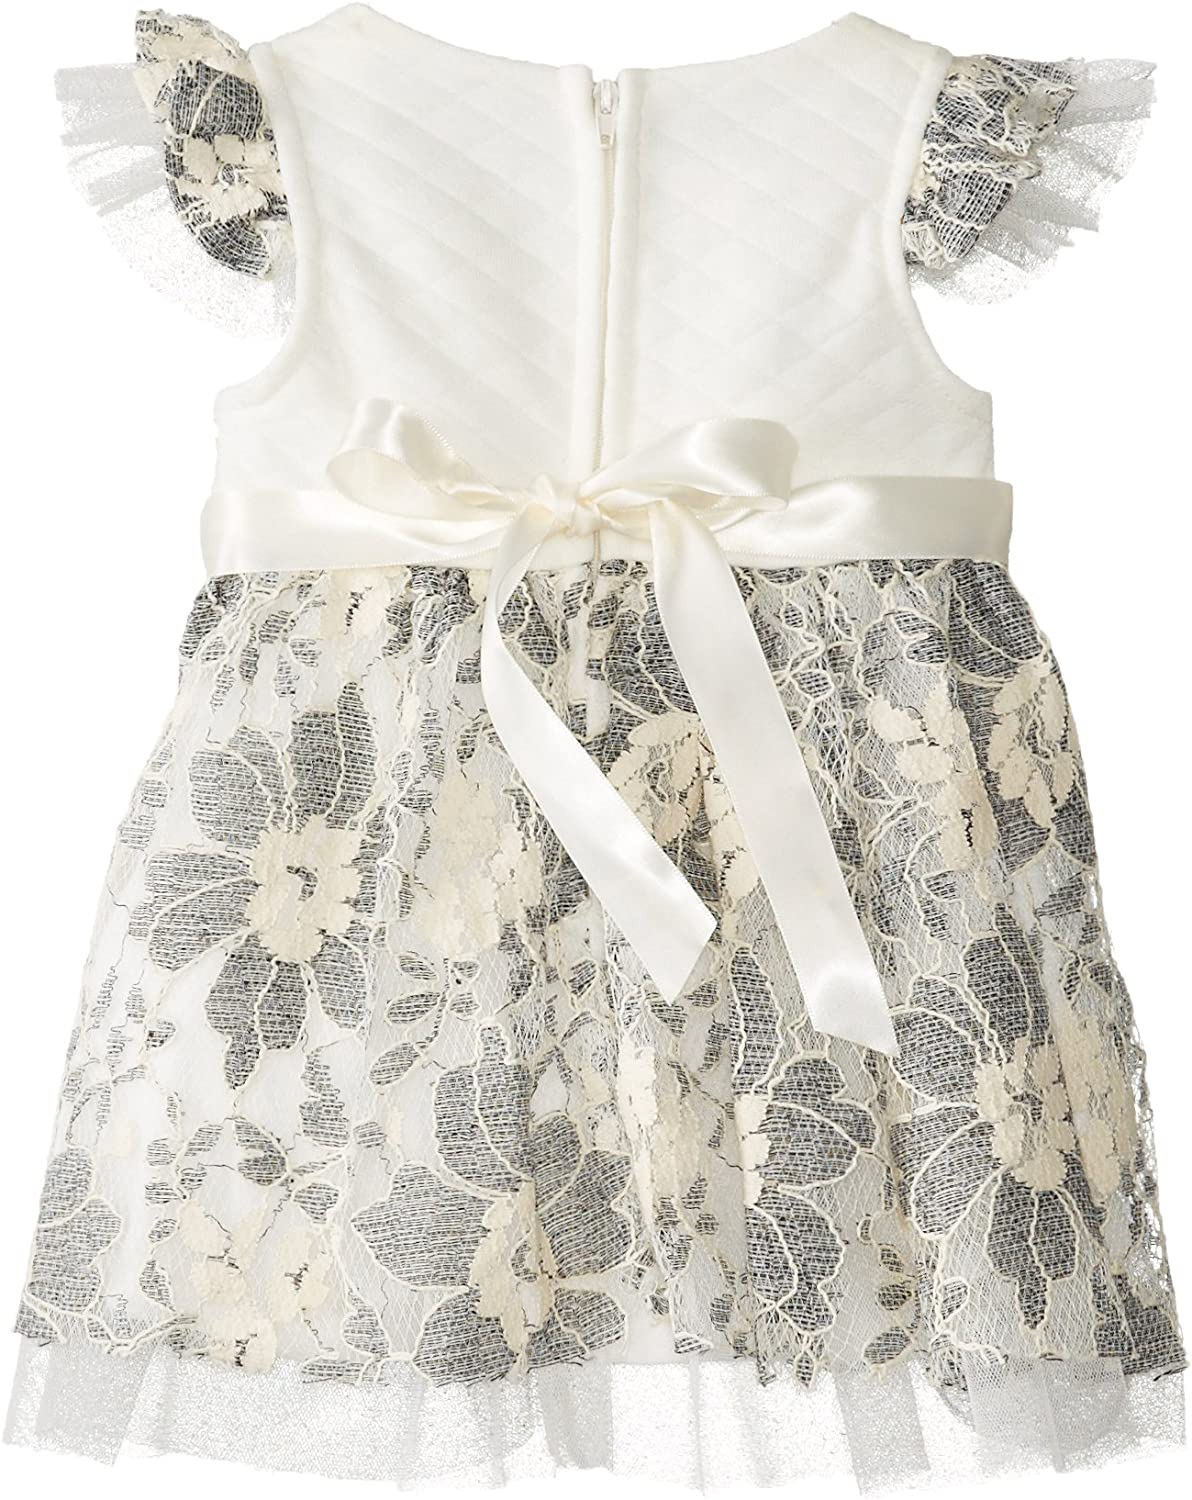 Bonnie Baby Girls Quilted Knit To Embroidered Lace Dress